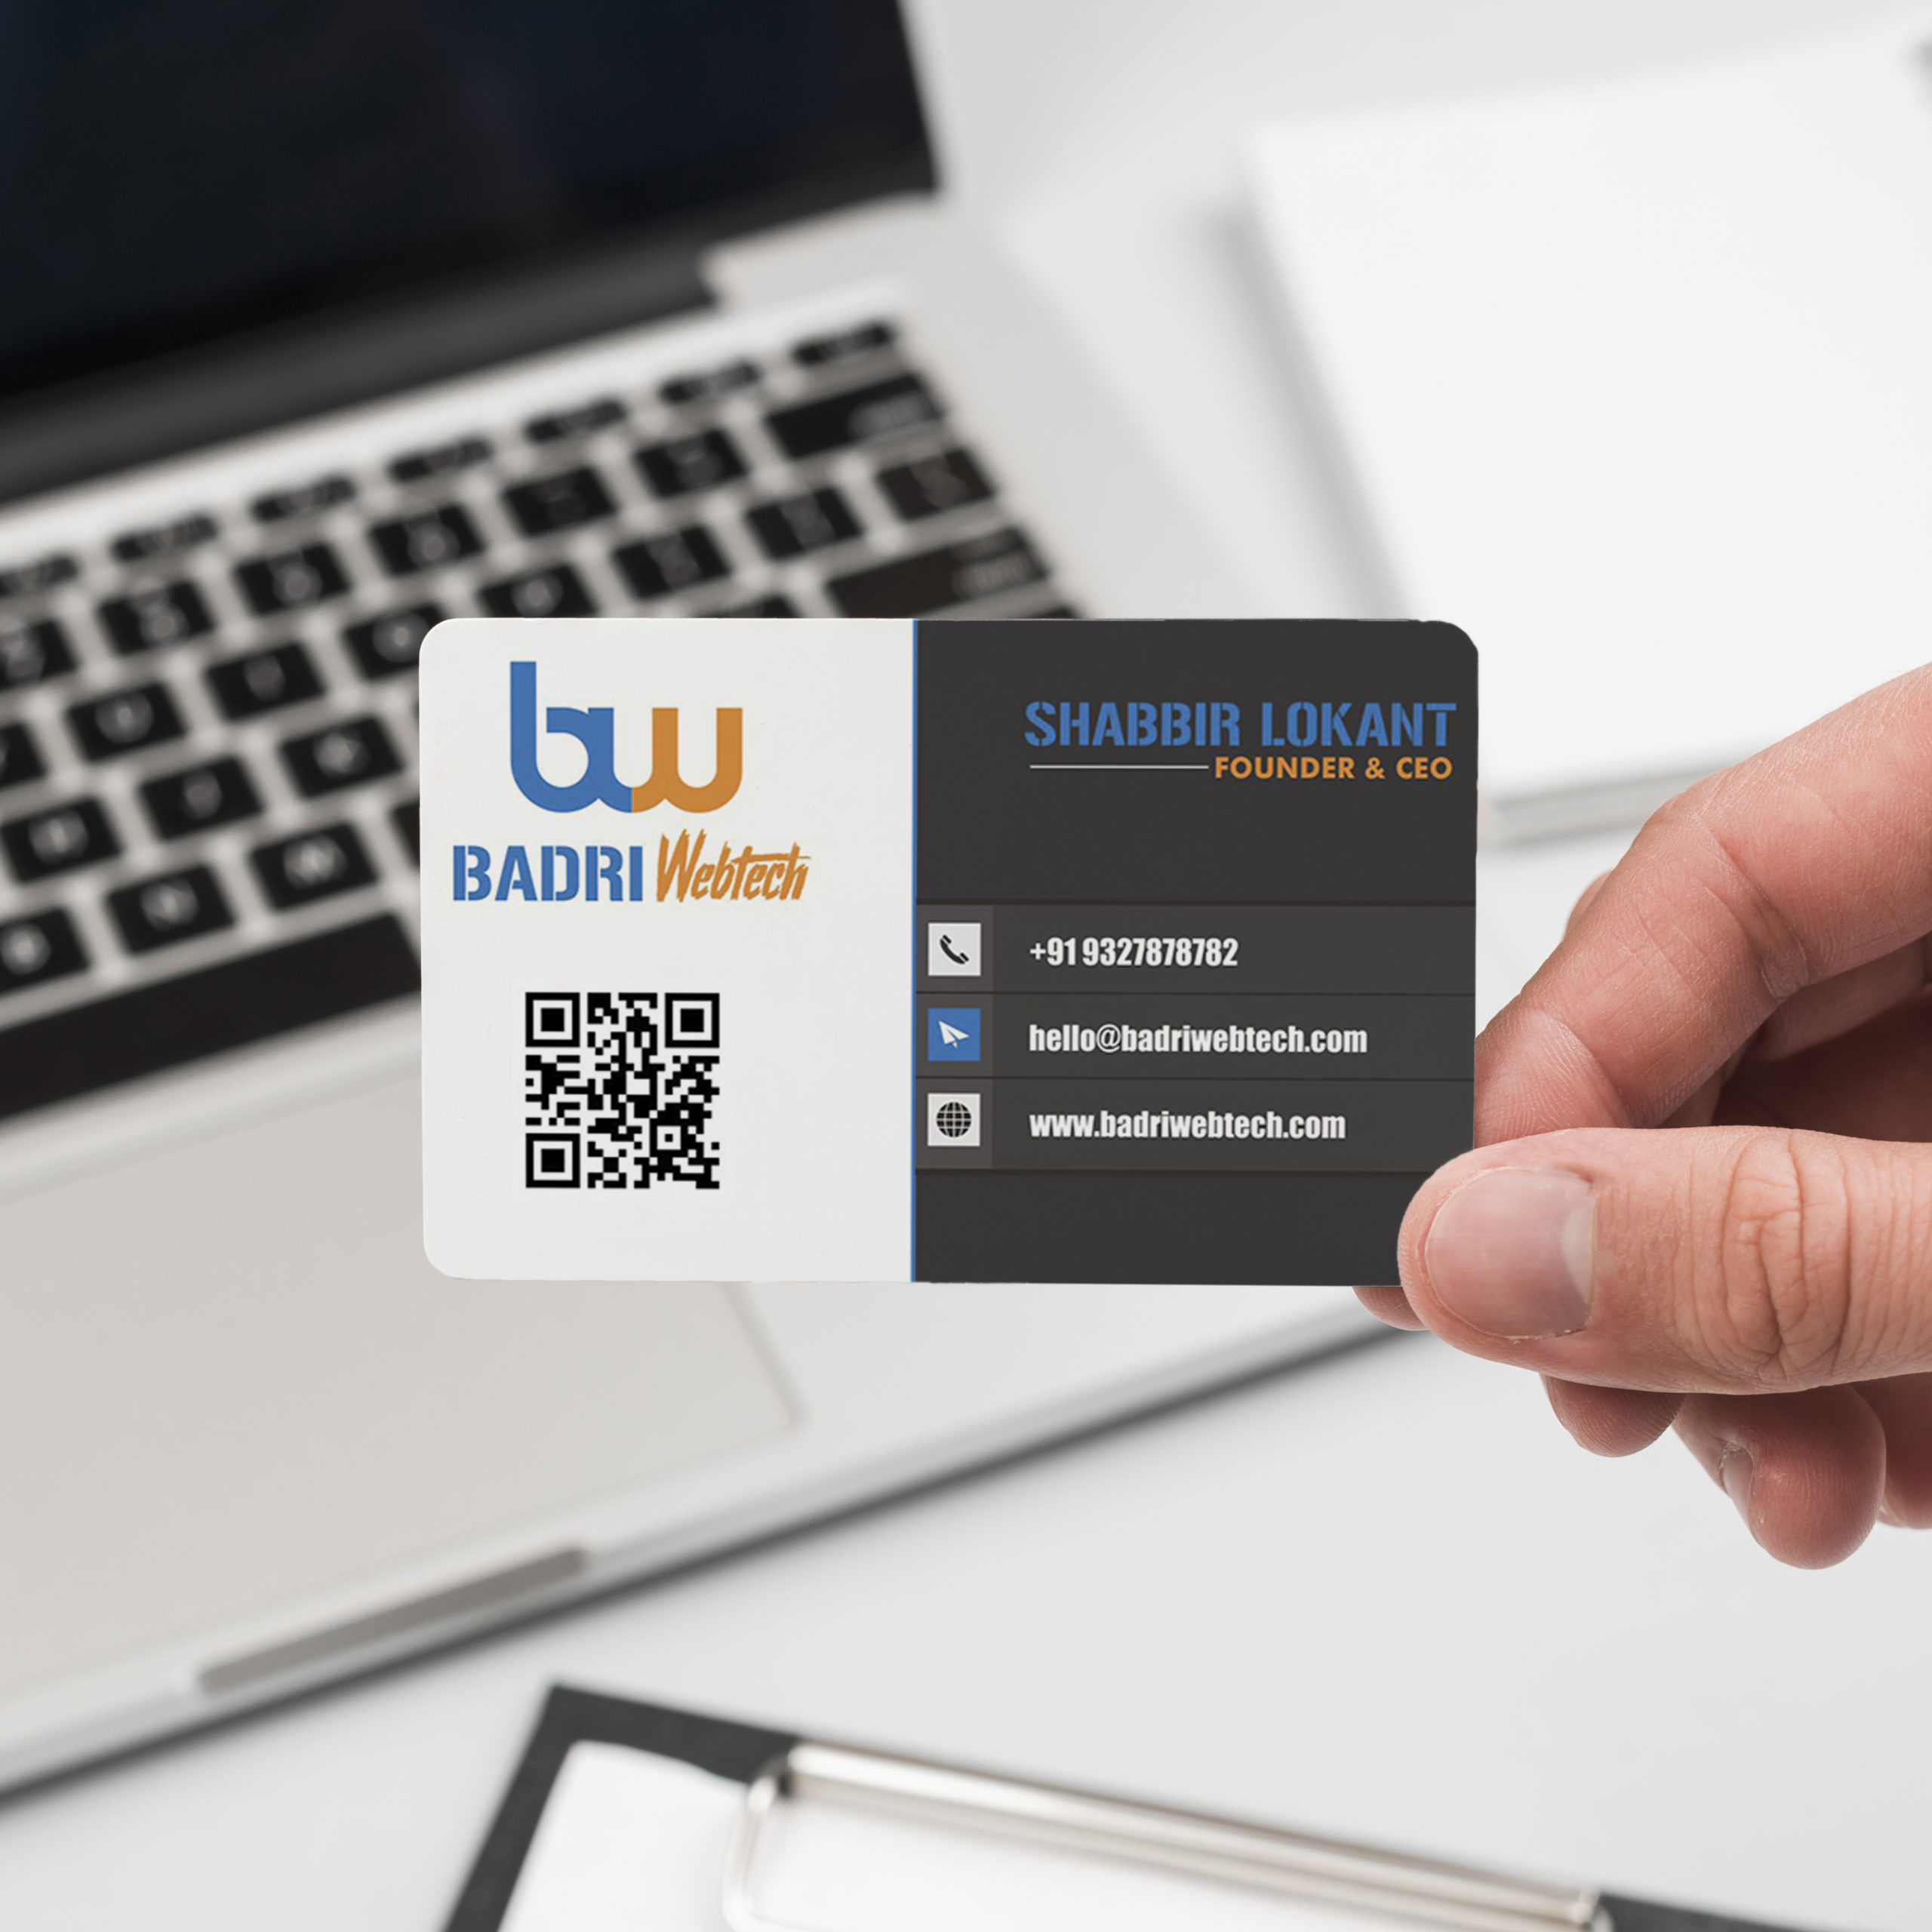 Webtech comany business card design by Badri Design